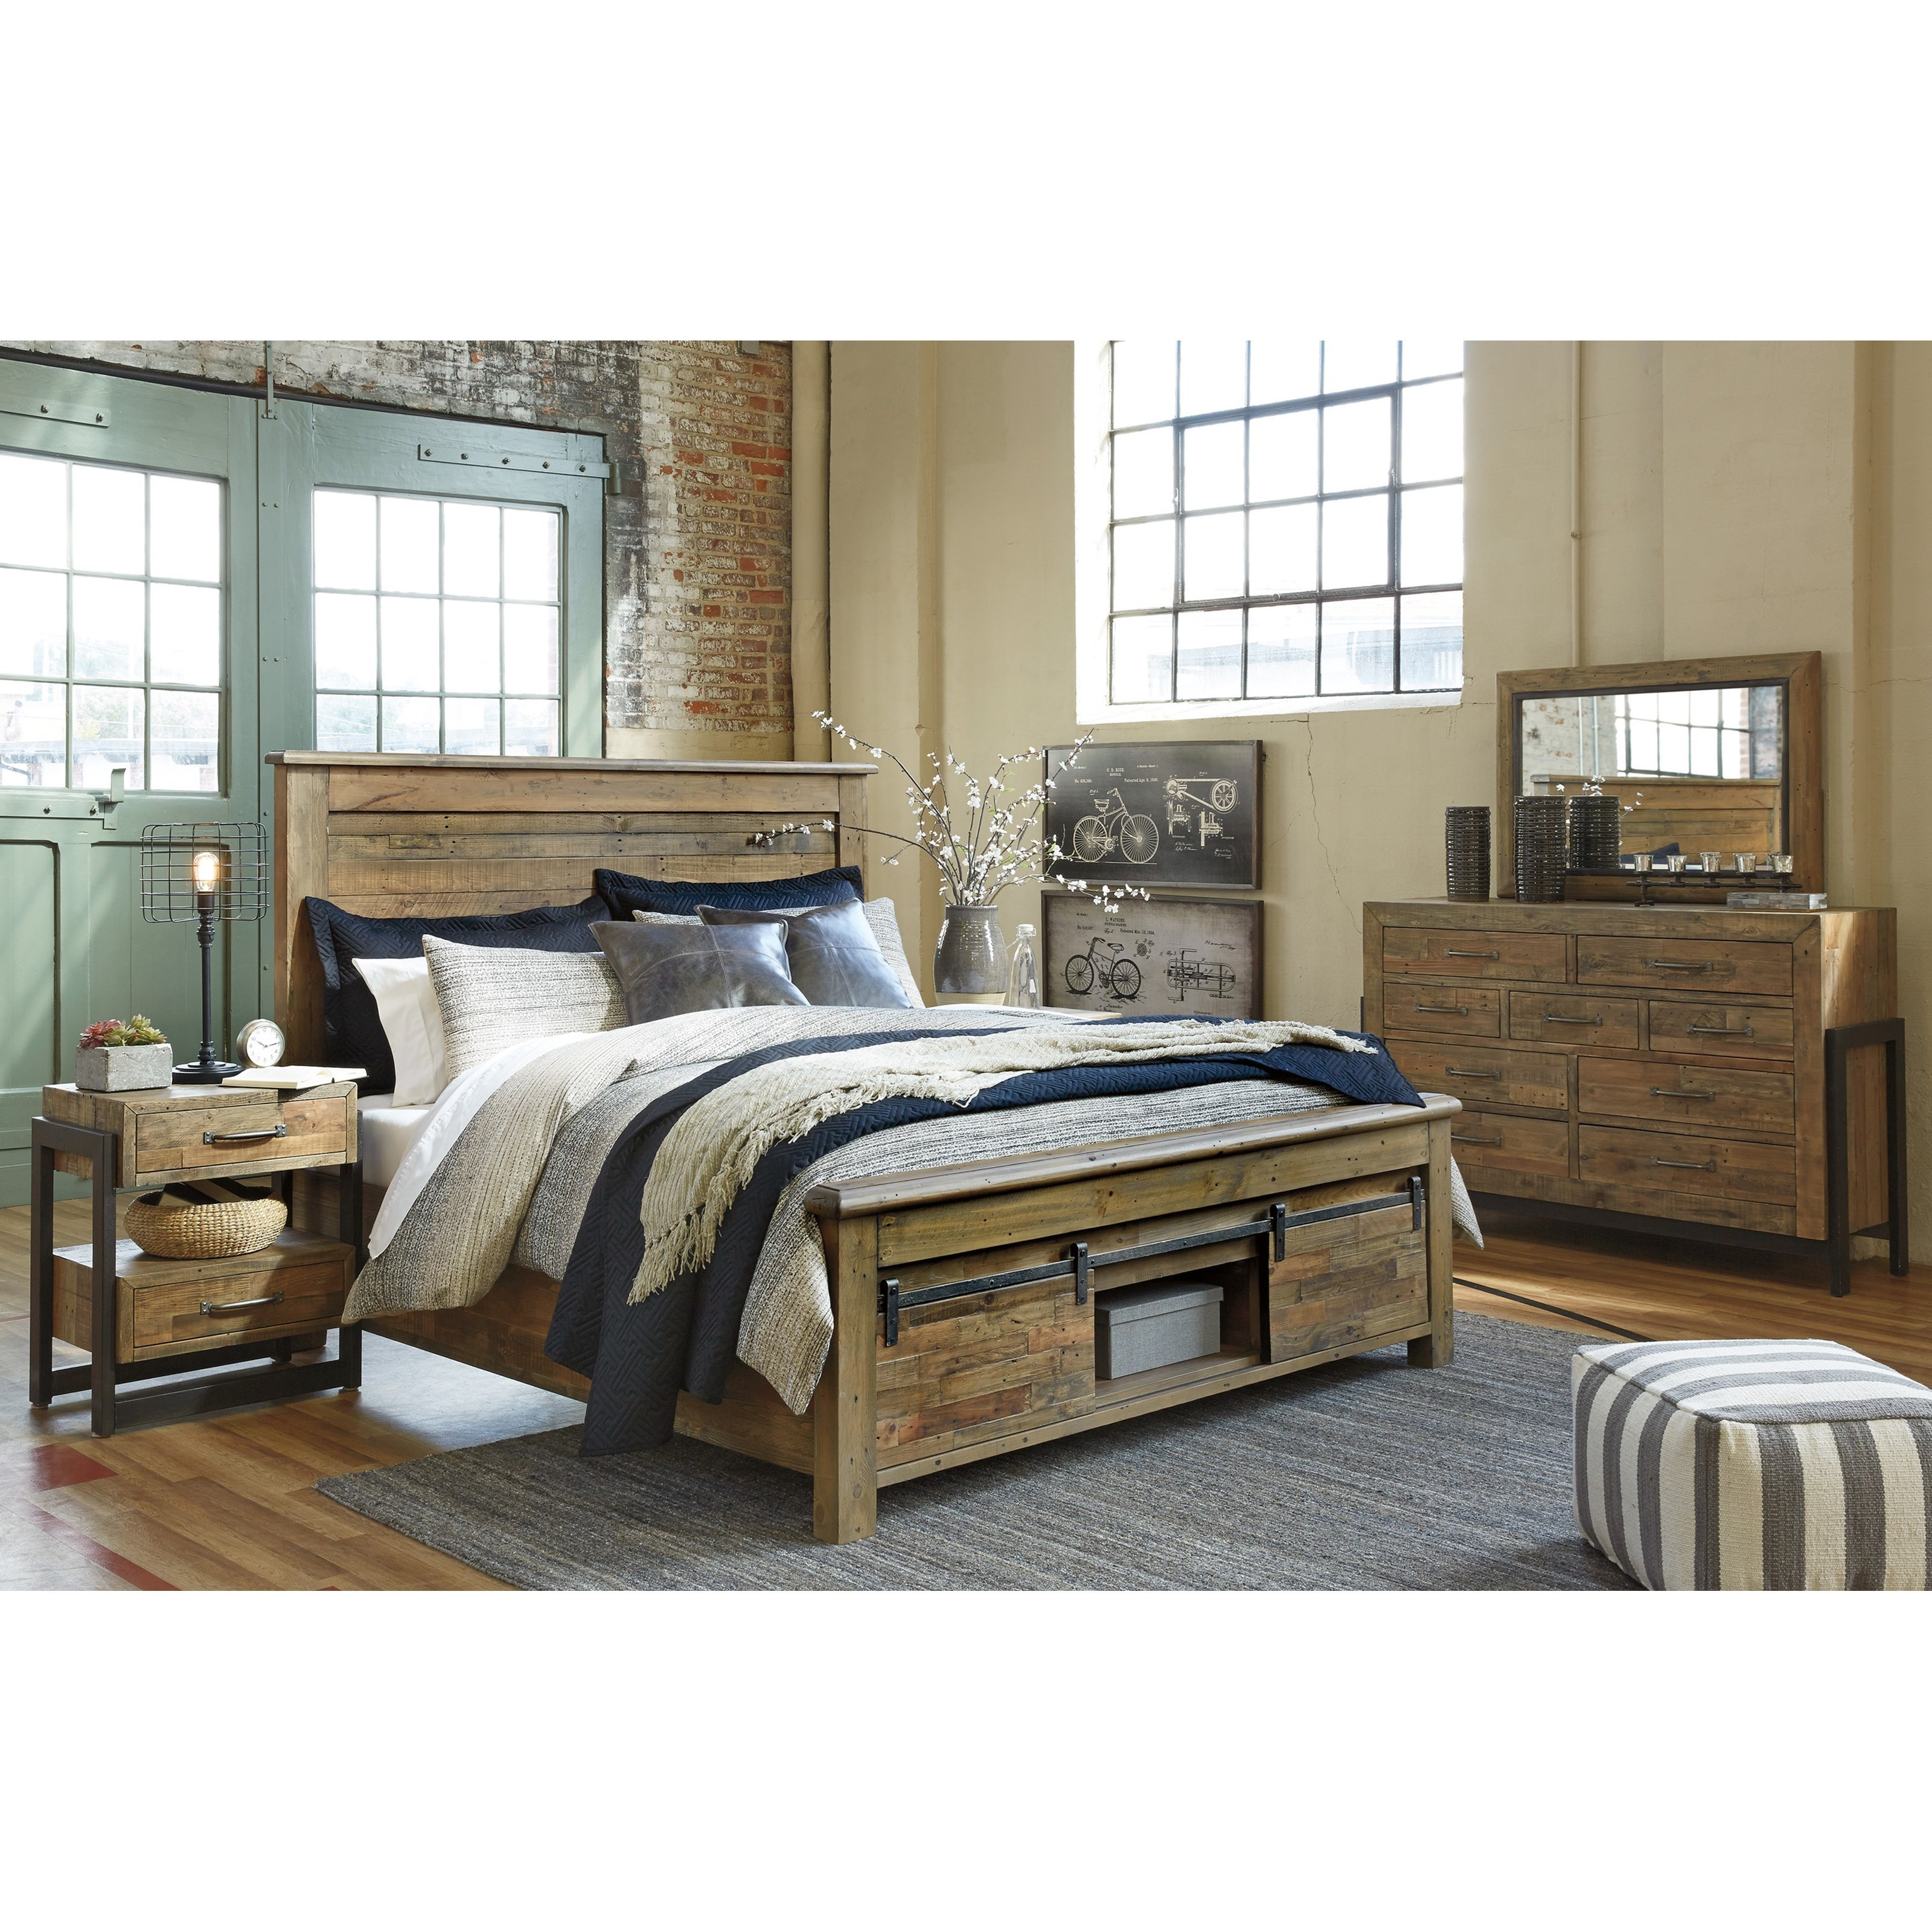 Bedroom Groups: Signature Design By Ashley Sommerford King Bedroom Group